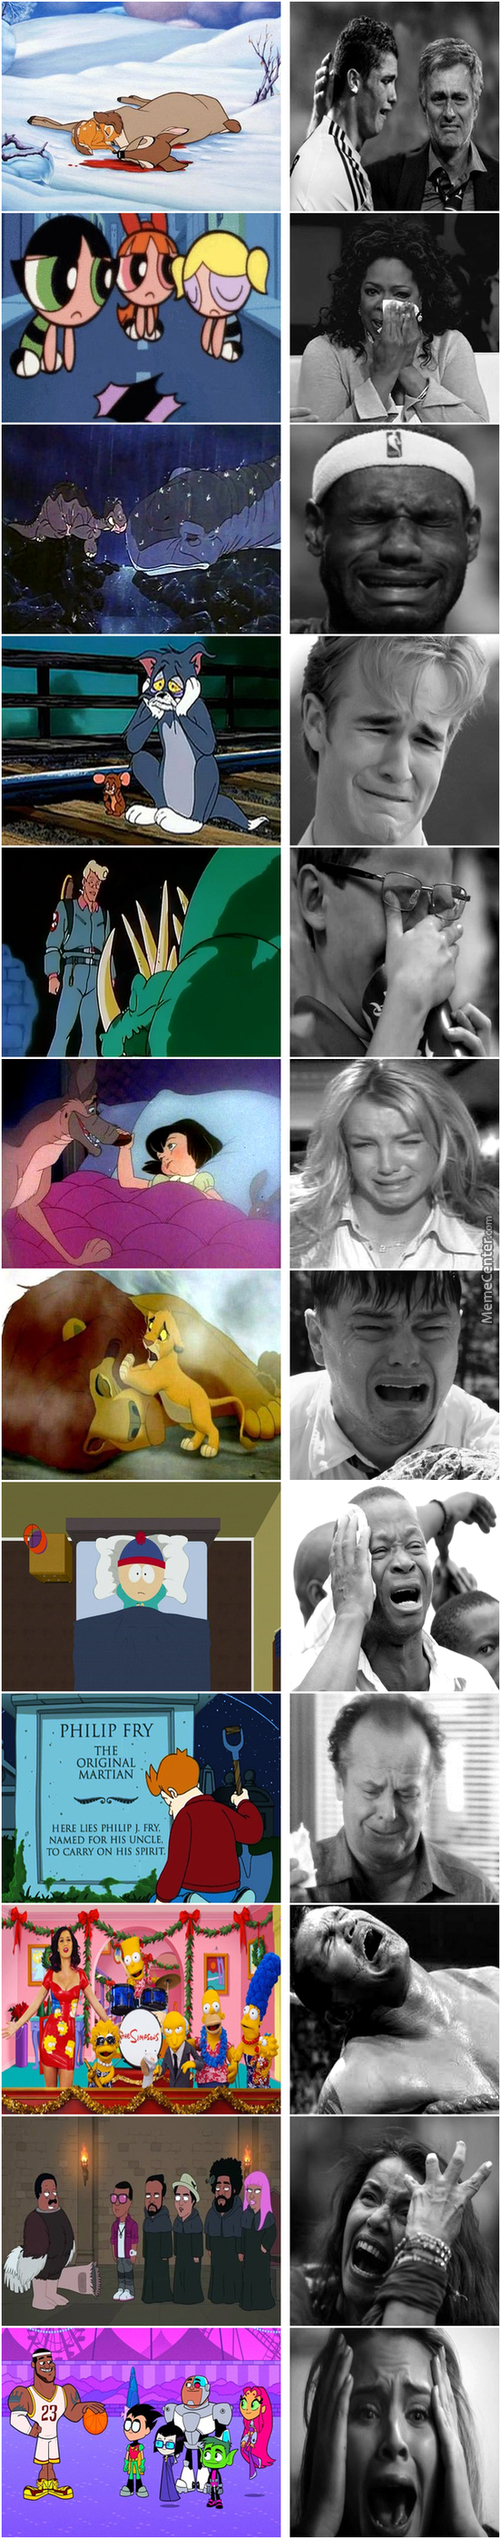 Saddest Cartoon Moments